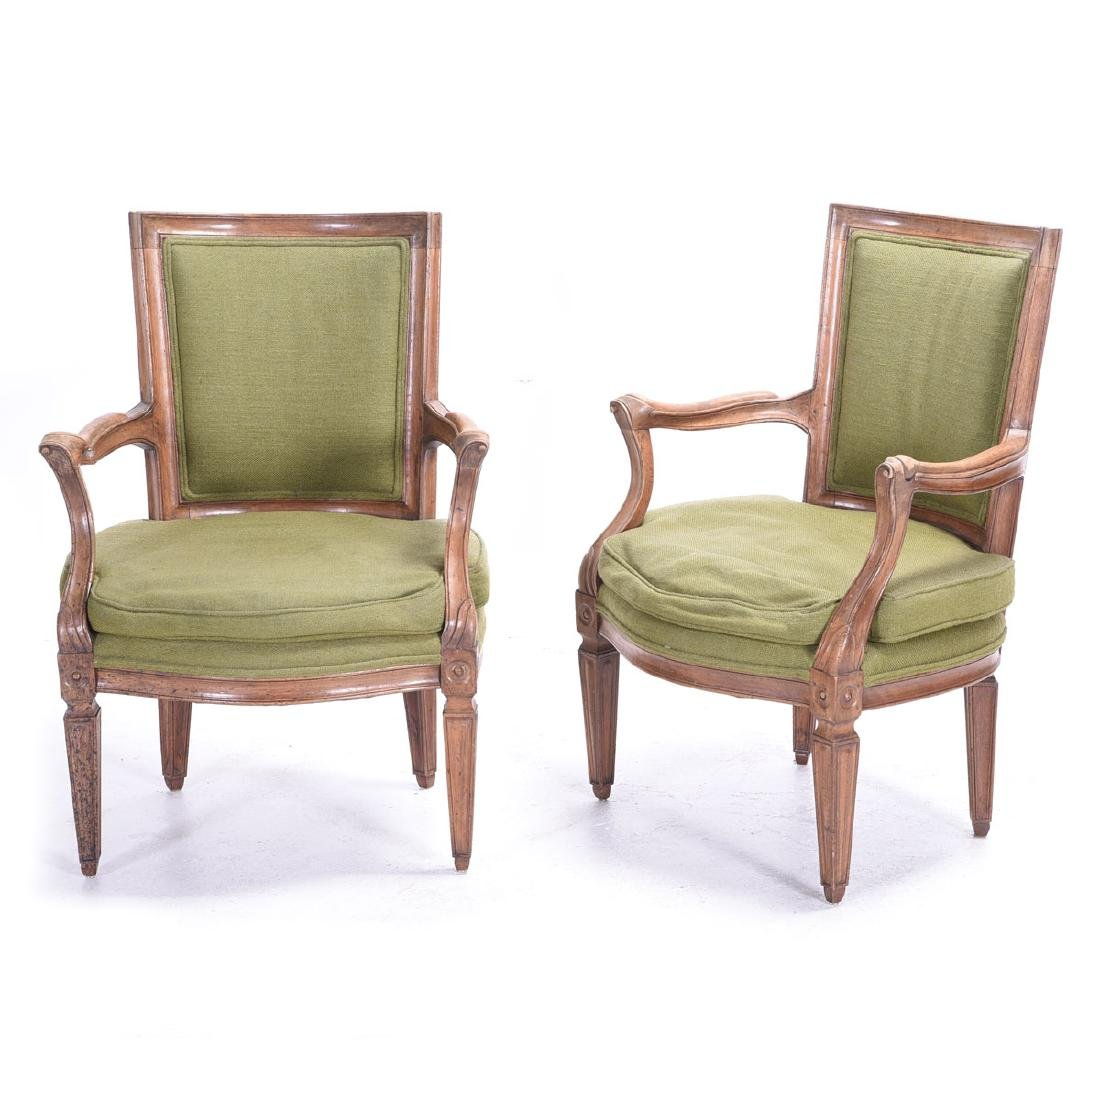 Pair French Provincial Walnut Fauteuils, with Green